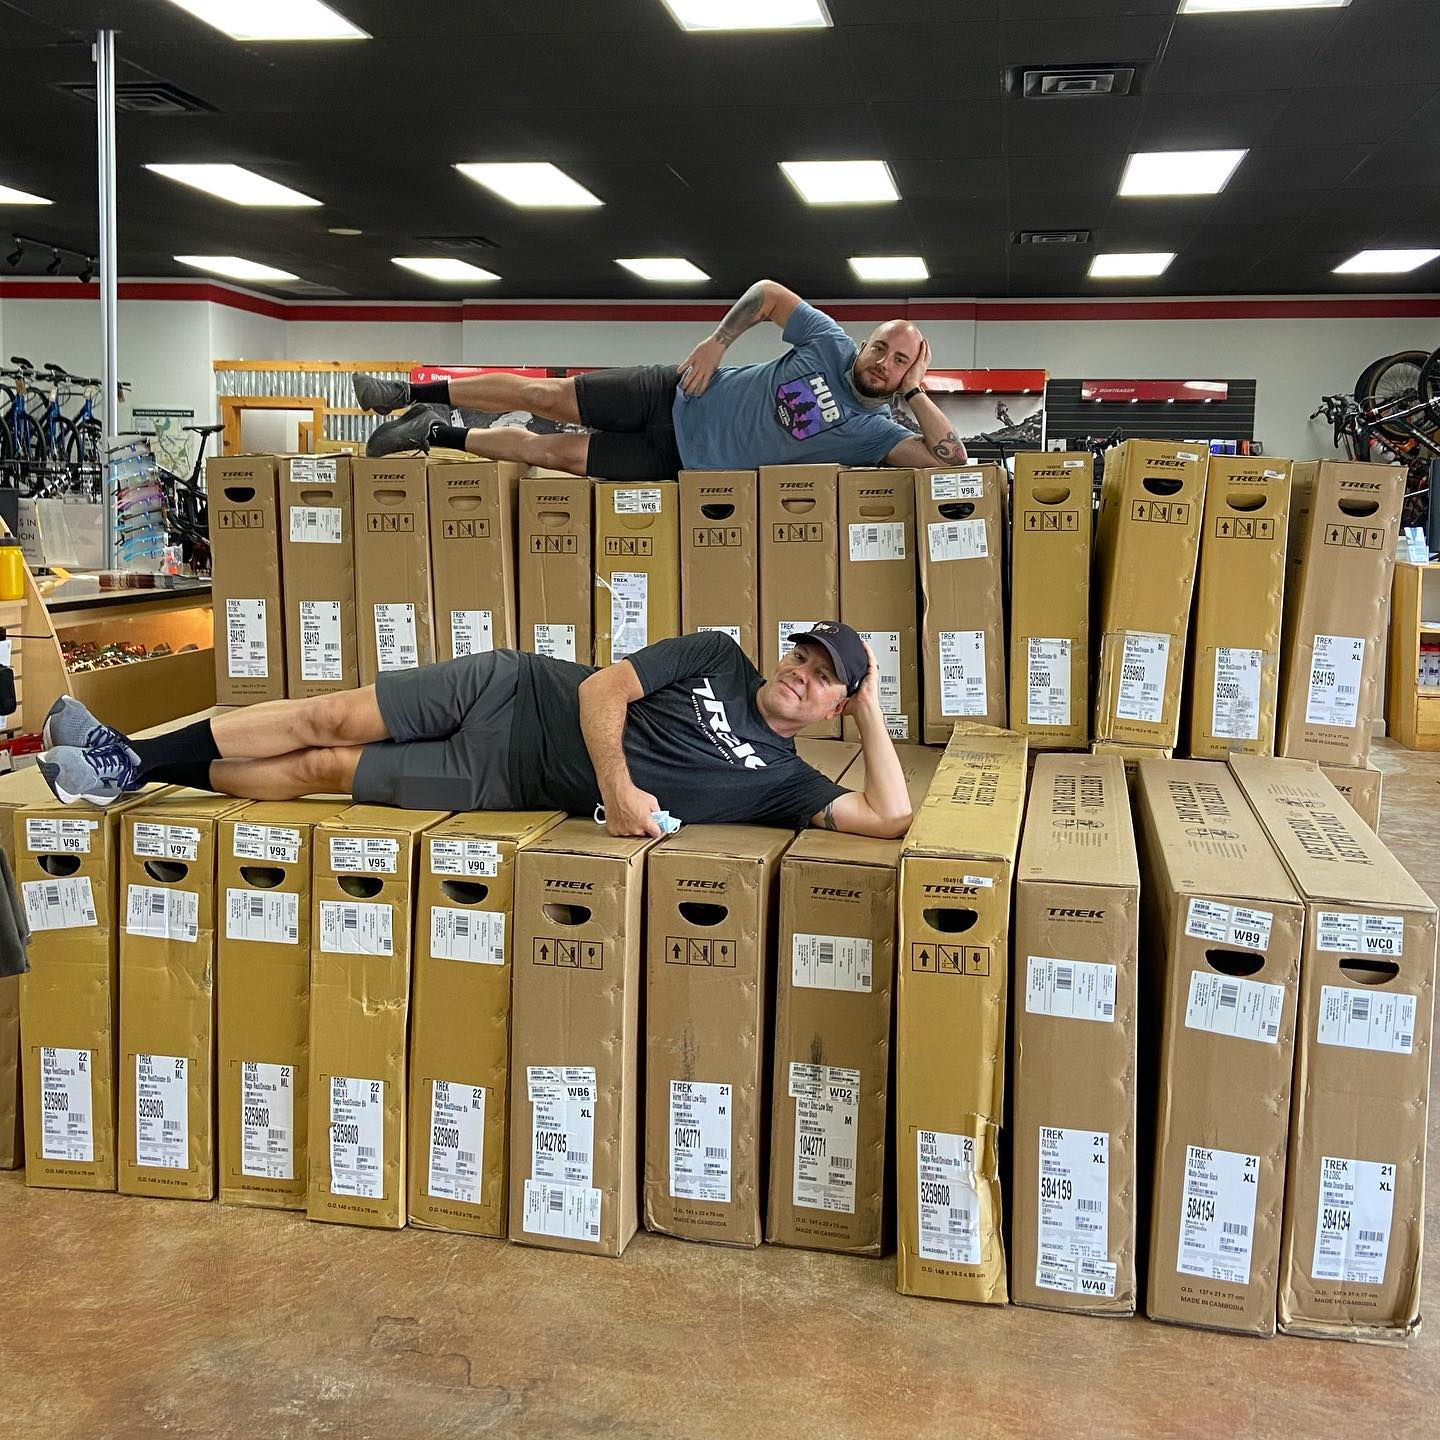 What bike shortage? Is that still a thing? . We have sport level mountain bikes and hybrid bikes.. we can put you on a bike NOW. We have about 300 bikes in all sizes. . #trekbikes #trek #ridebikes #mtnbike #hybridbike #getoutsideandride #bikeshortage